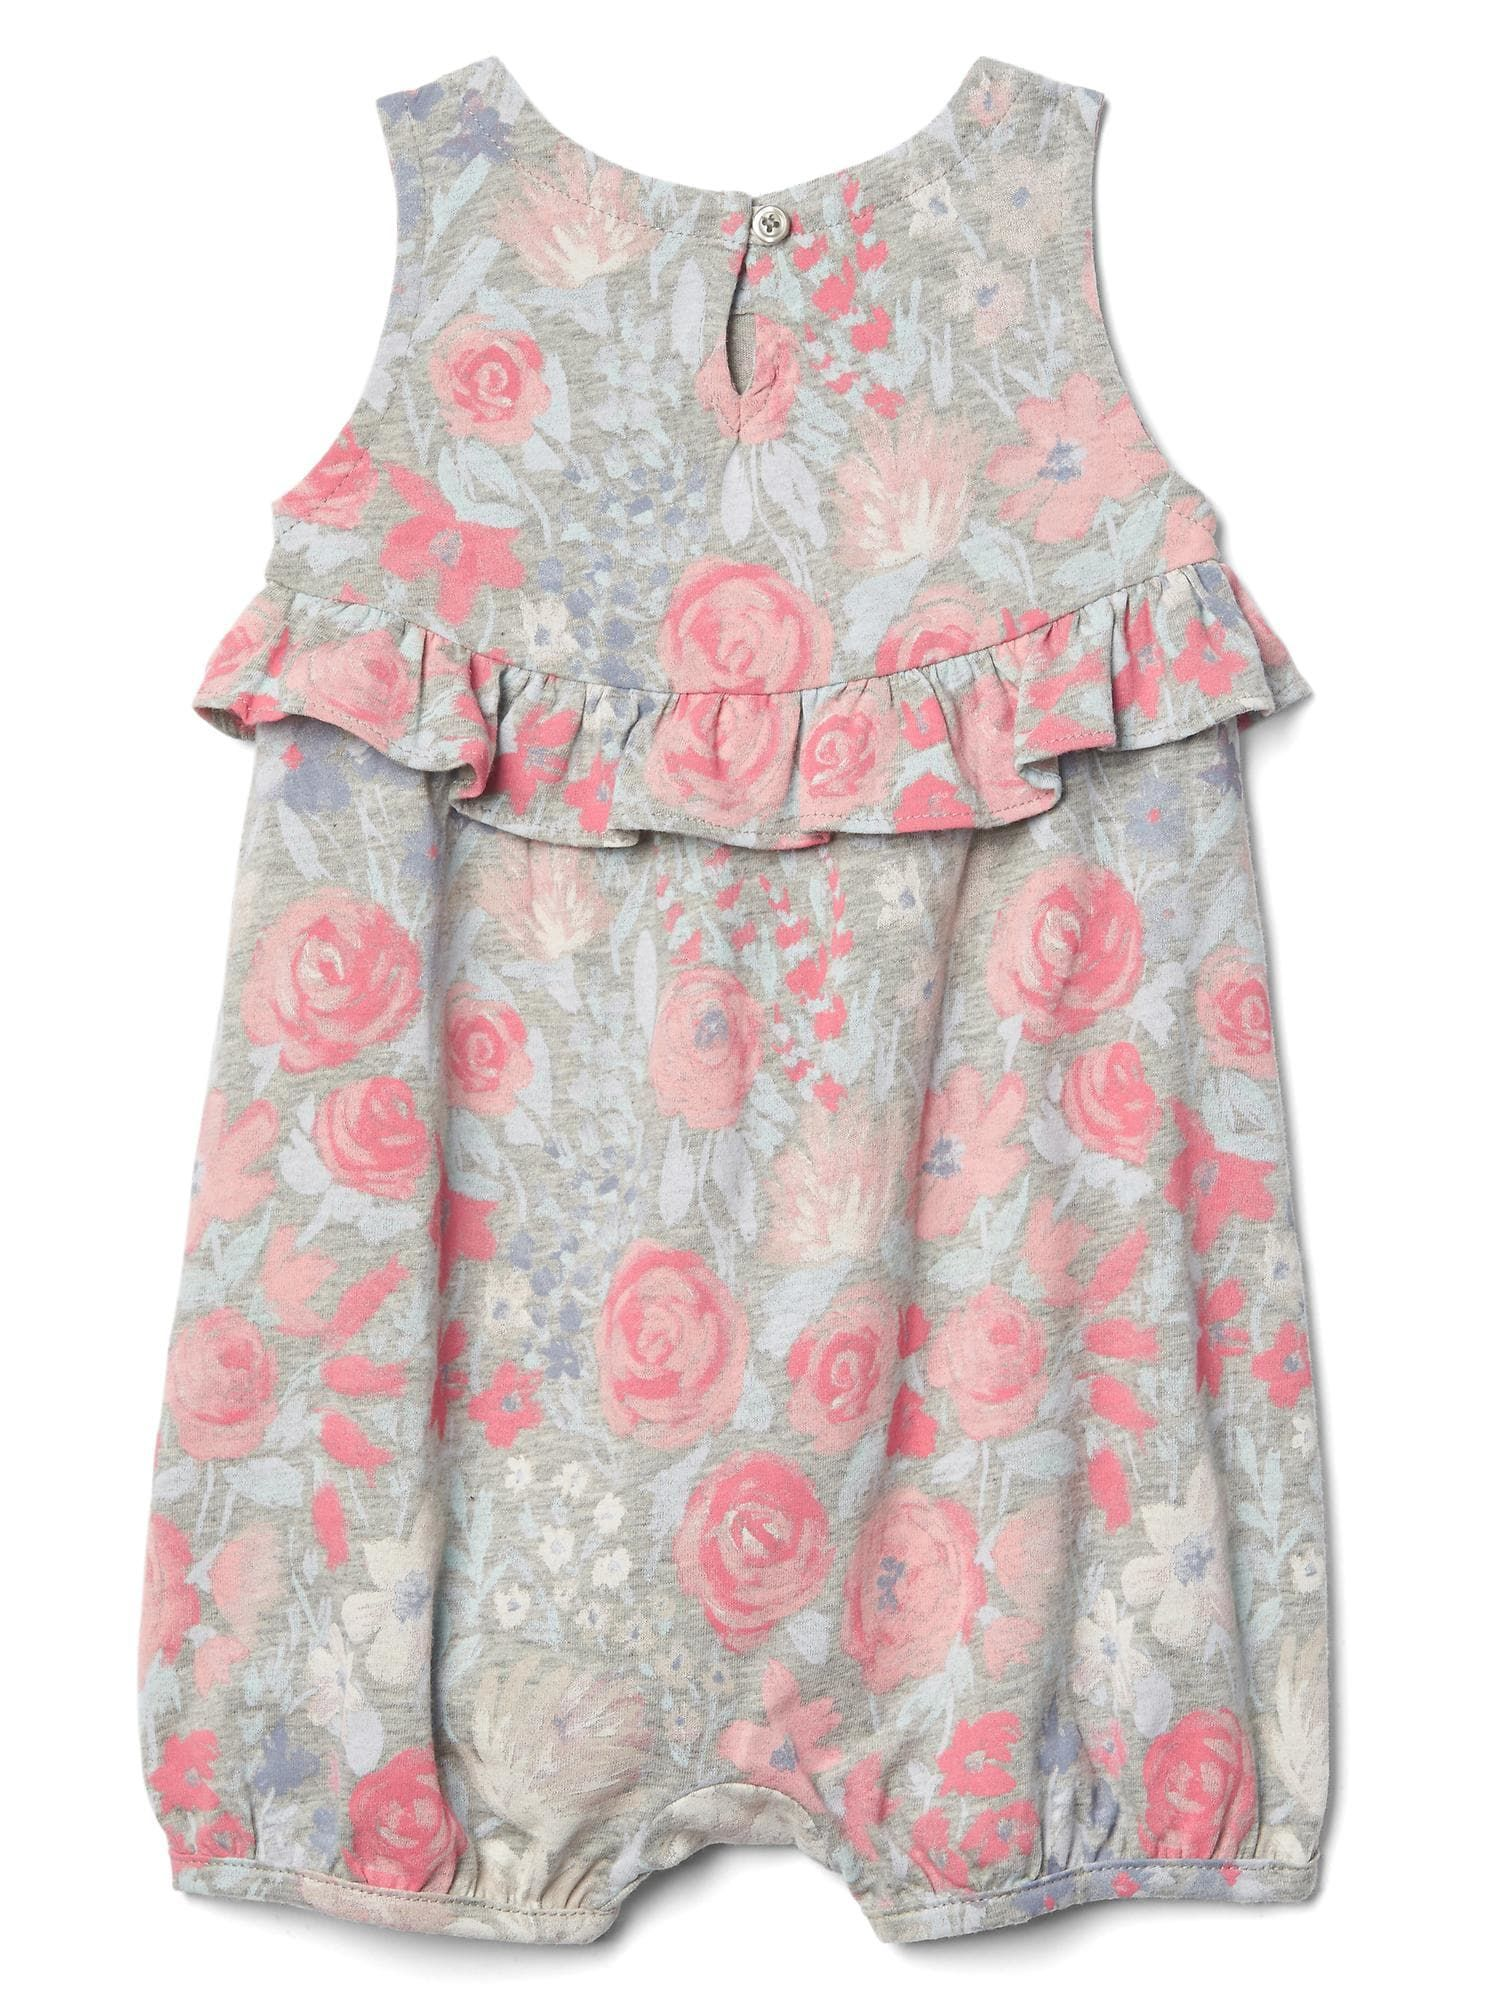 Pink floral baby romper from Gap